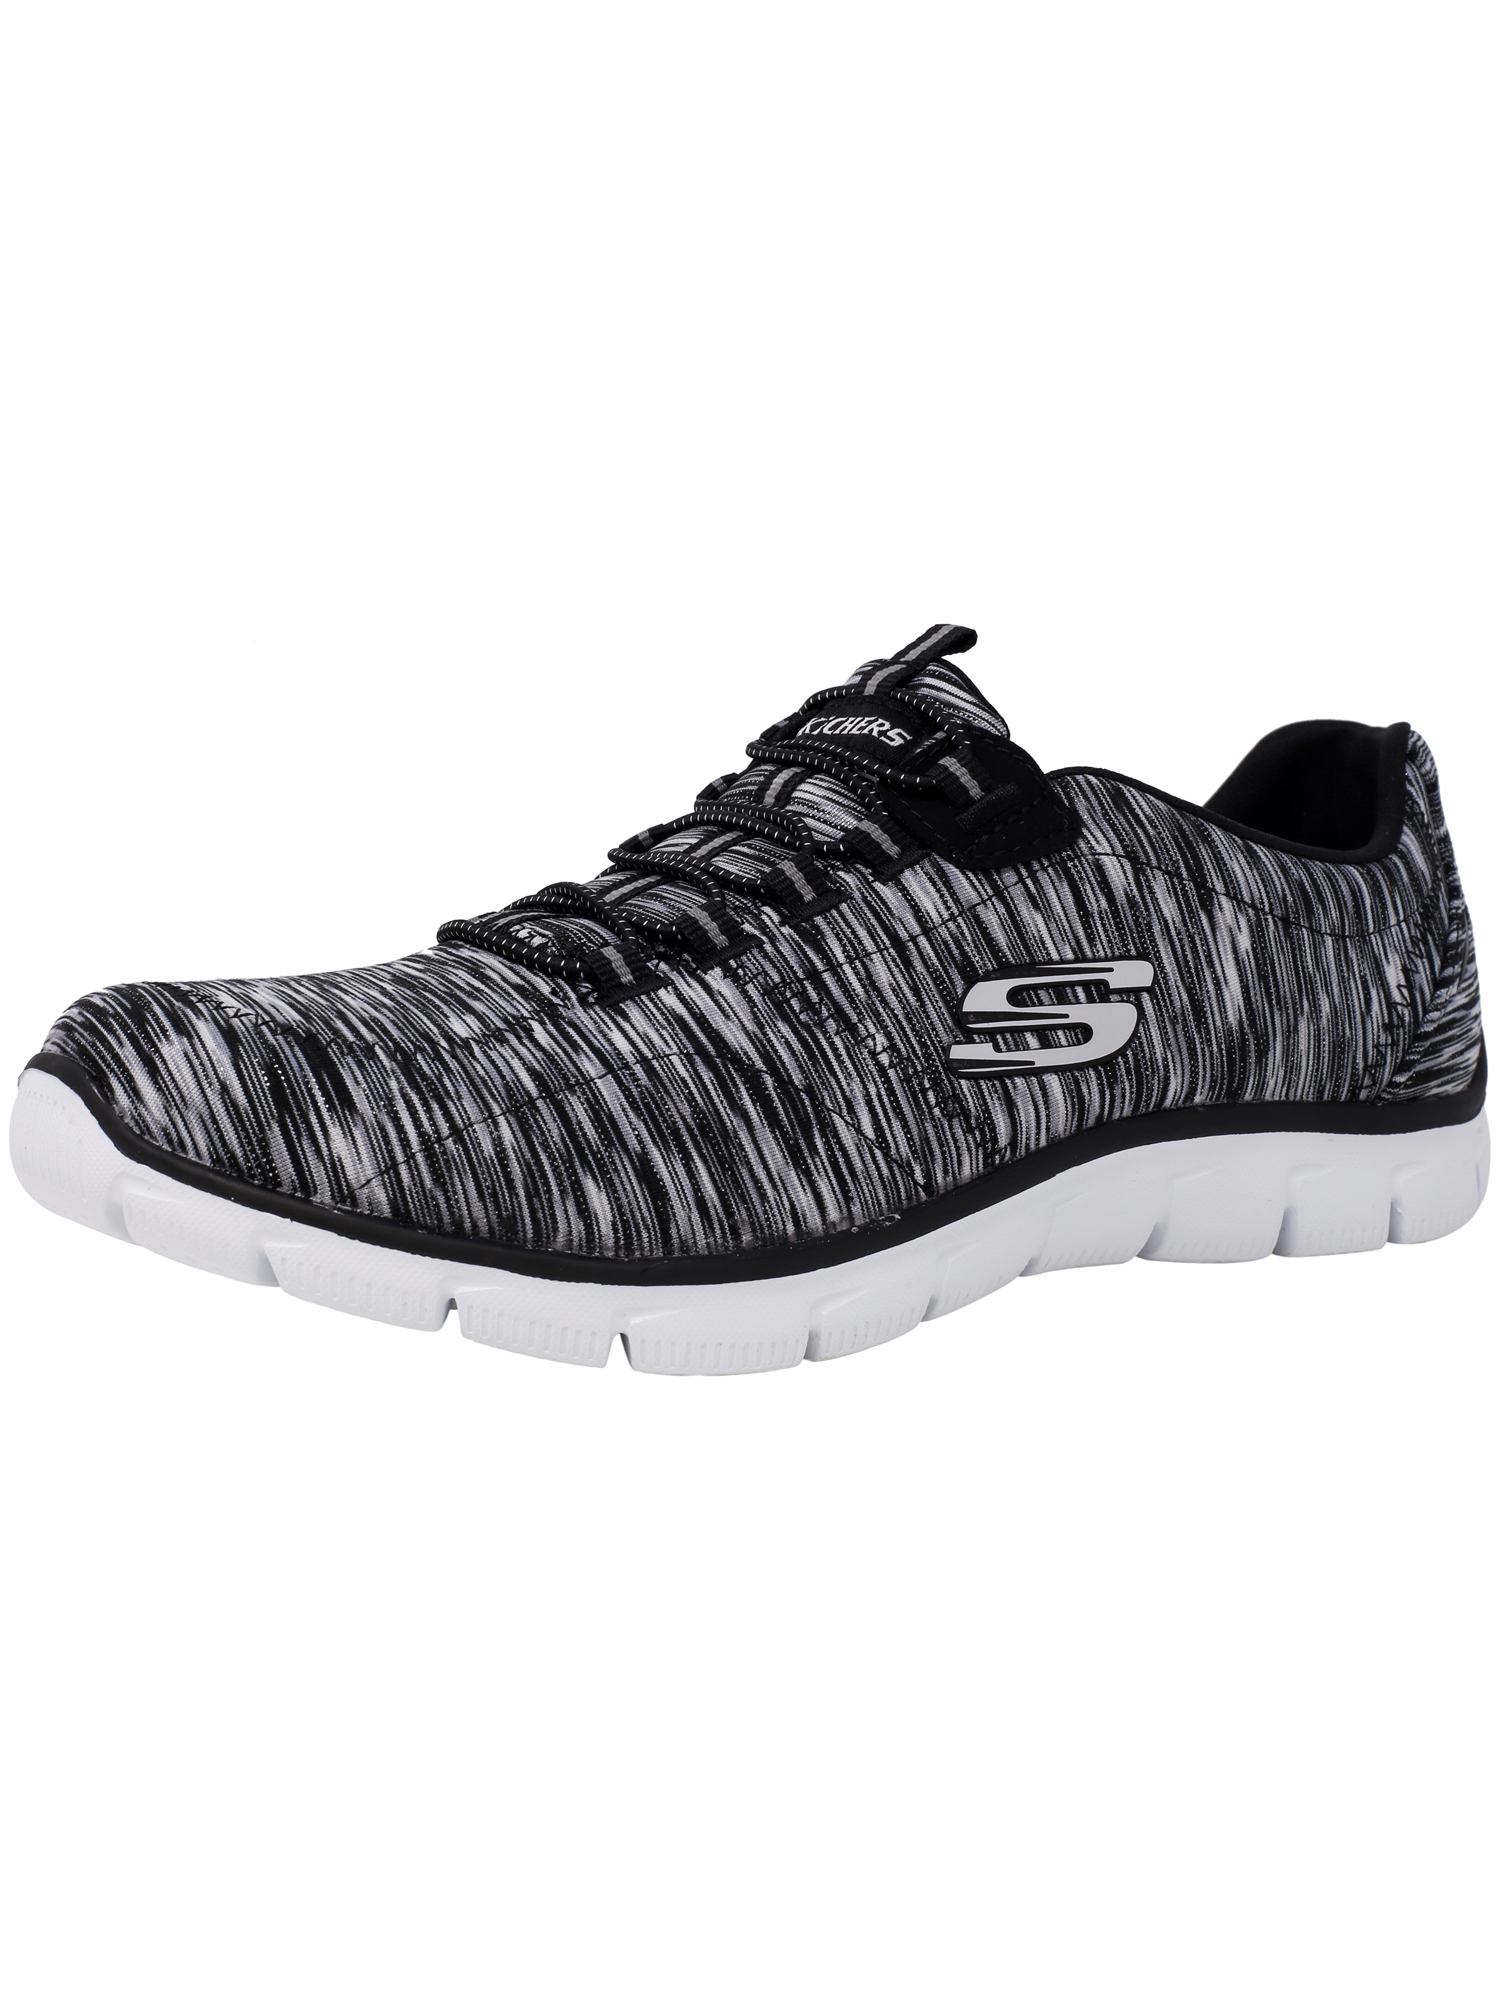 Skechers Women's Empire - Game Game Game On Black / White Ankle-High Fabric Training Shoes 10M e9e6cc